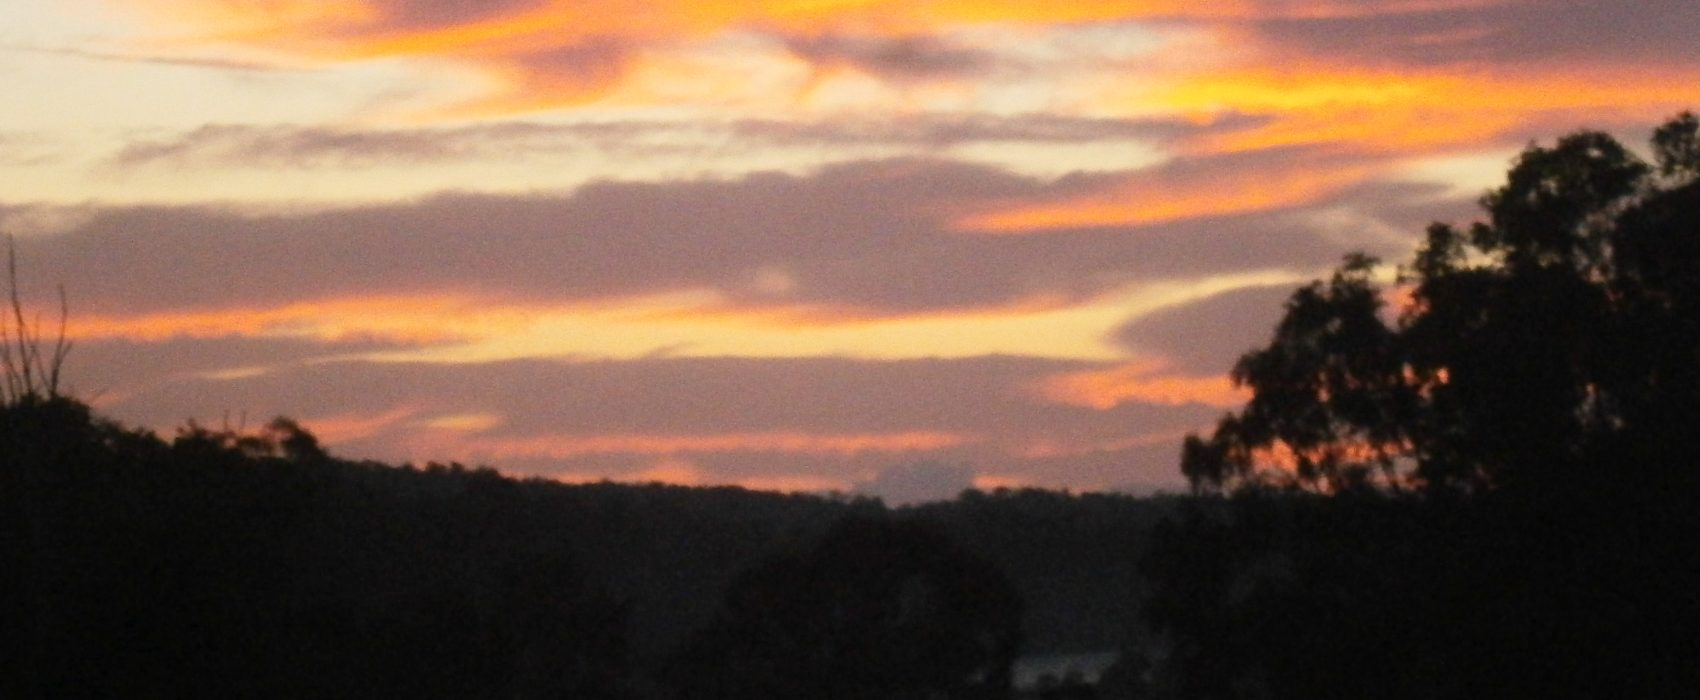 sunset at bungadoo